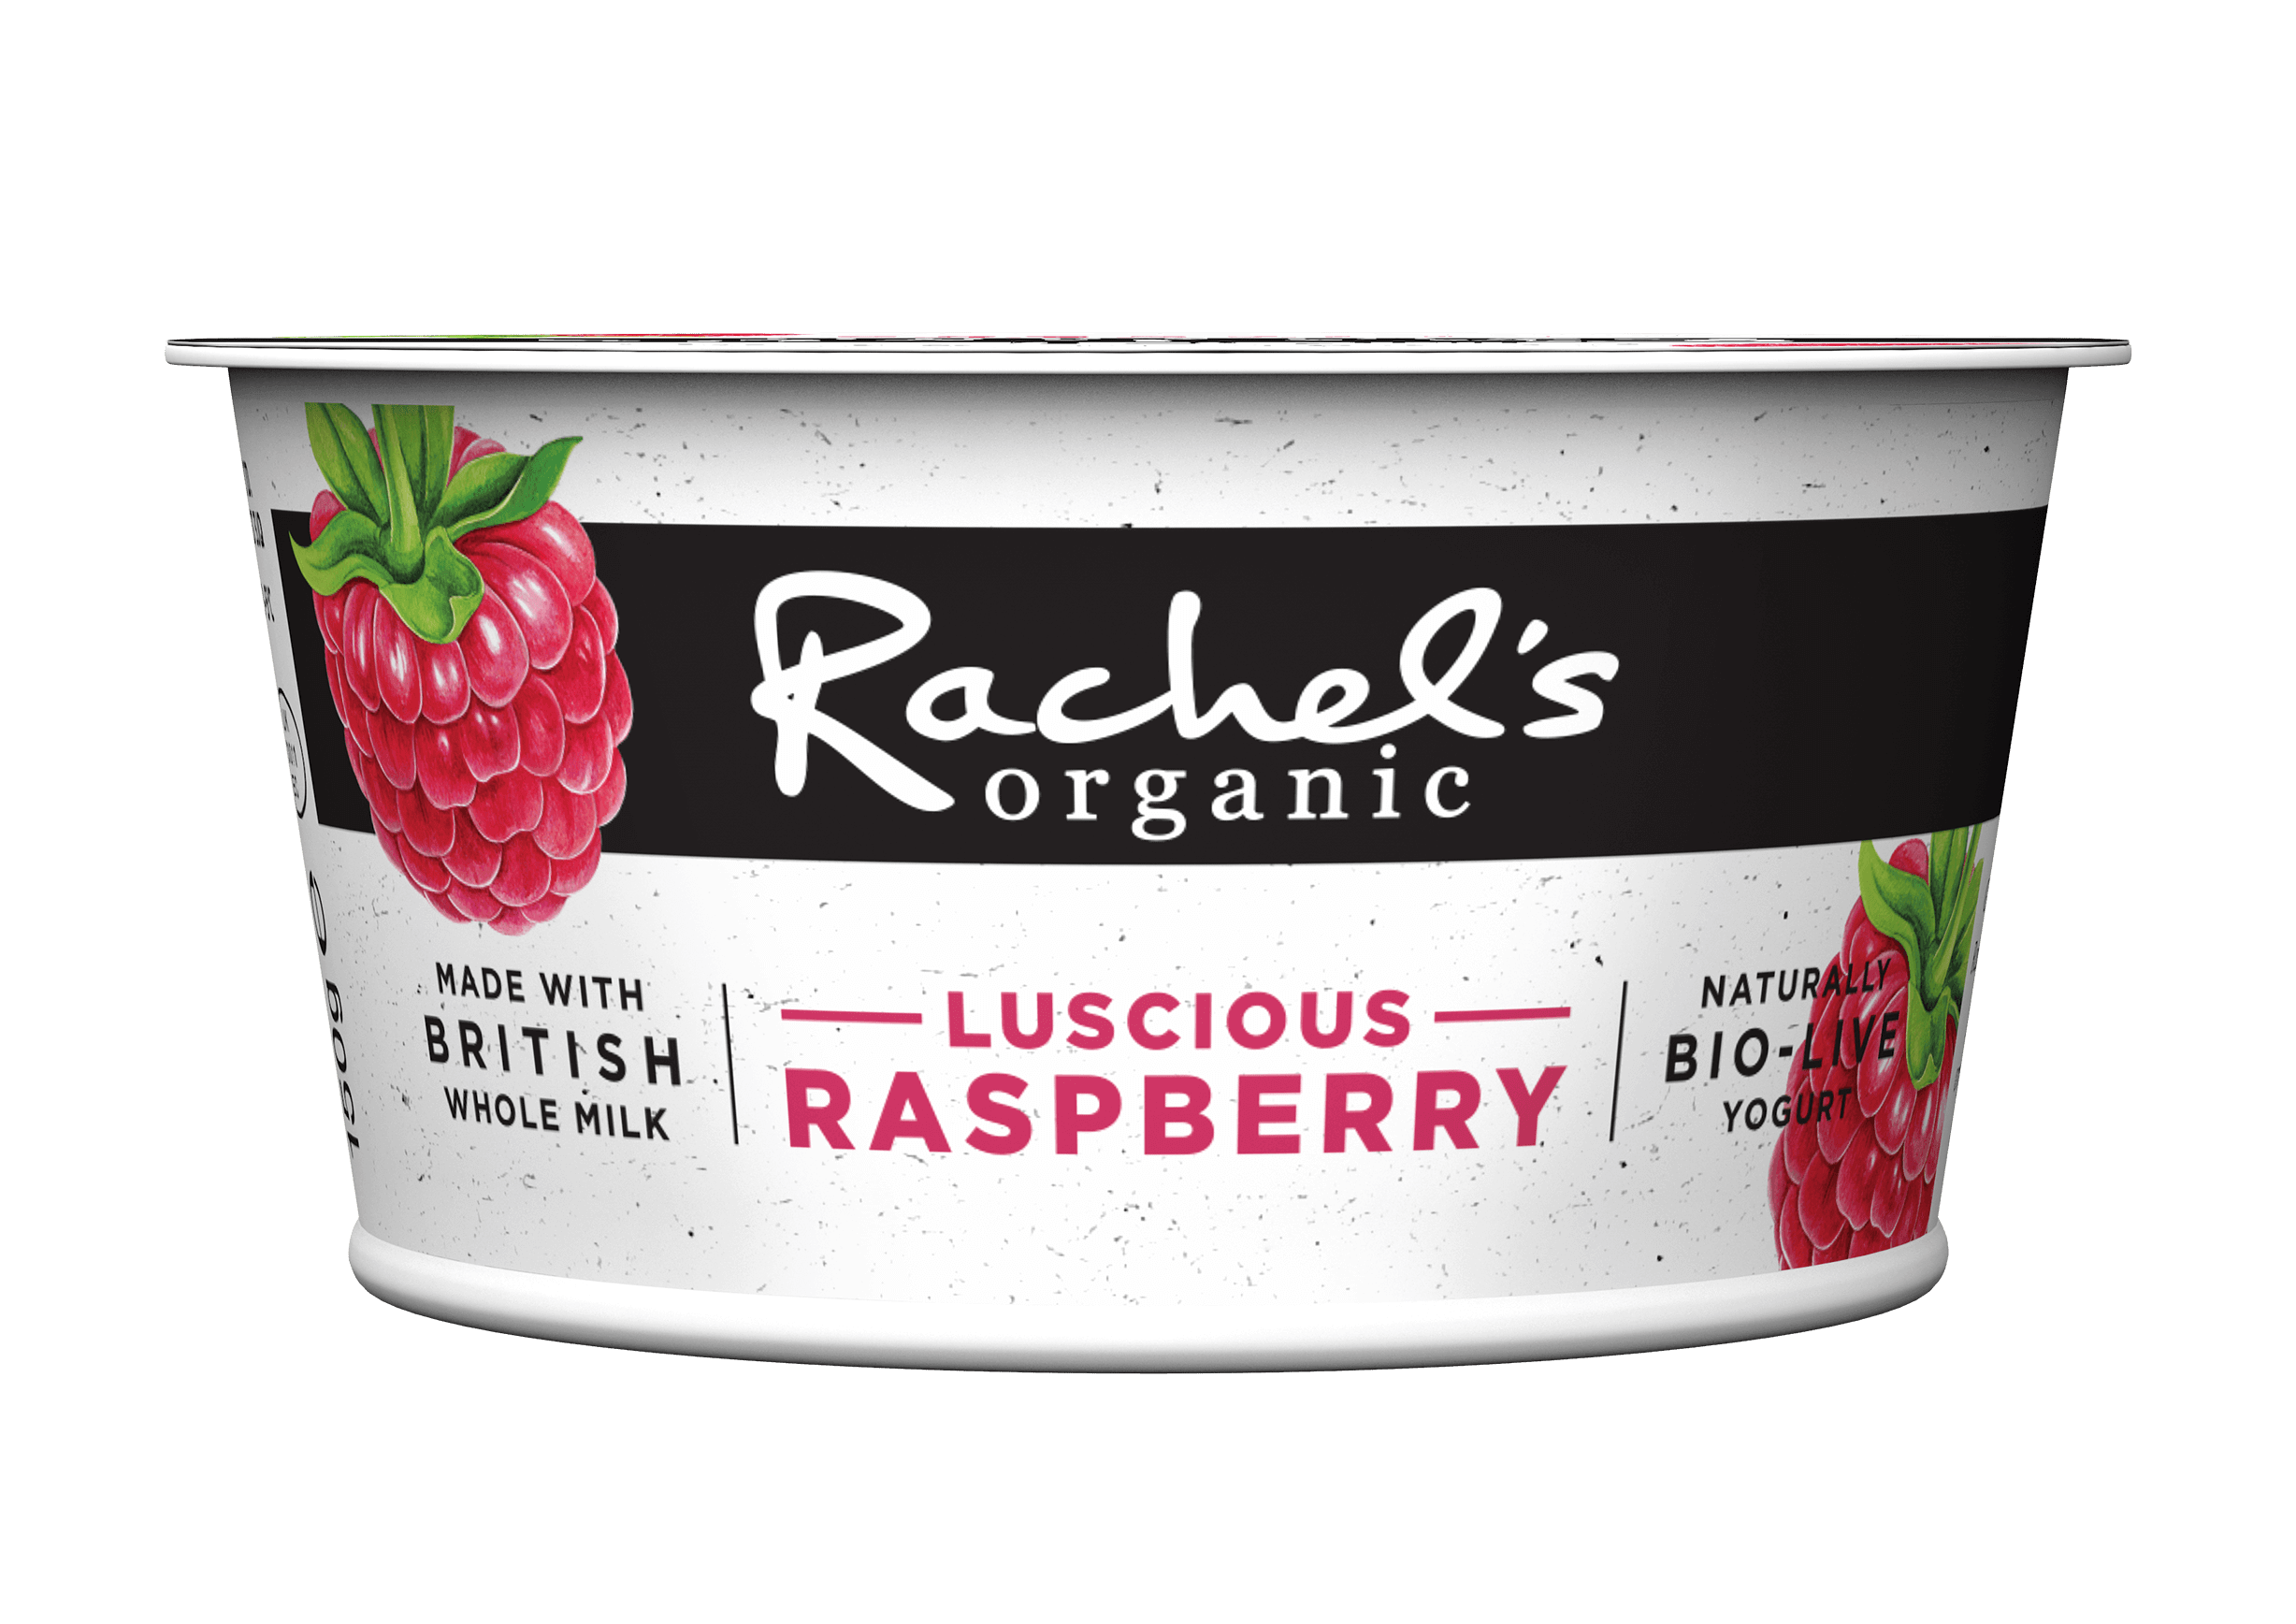 https://www.rachelsorganic.co.uk/wp-content/uploads/2019/12/5021638000991-3D-RACHELS-150G-POT-LUSCIOUS-RASPBERRY.png